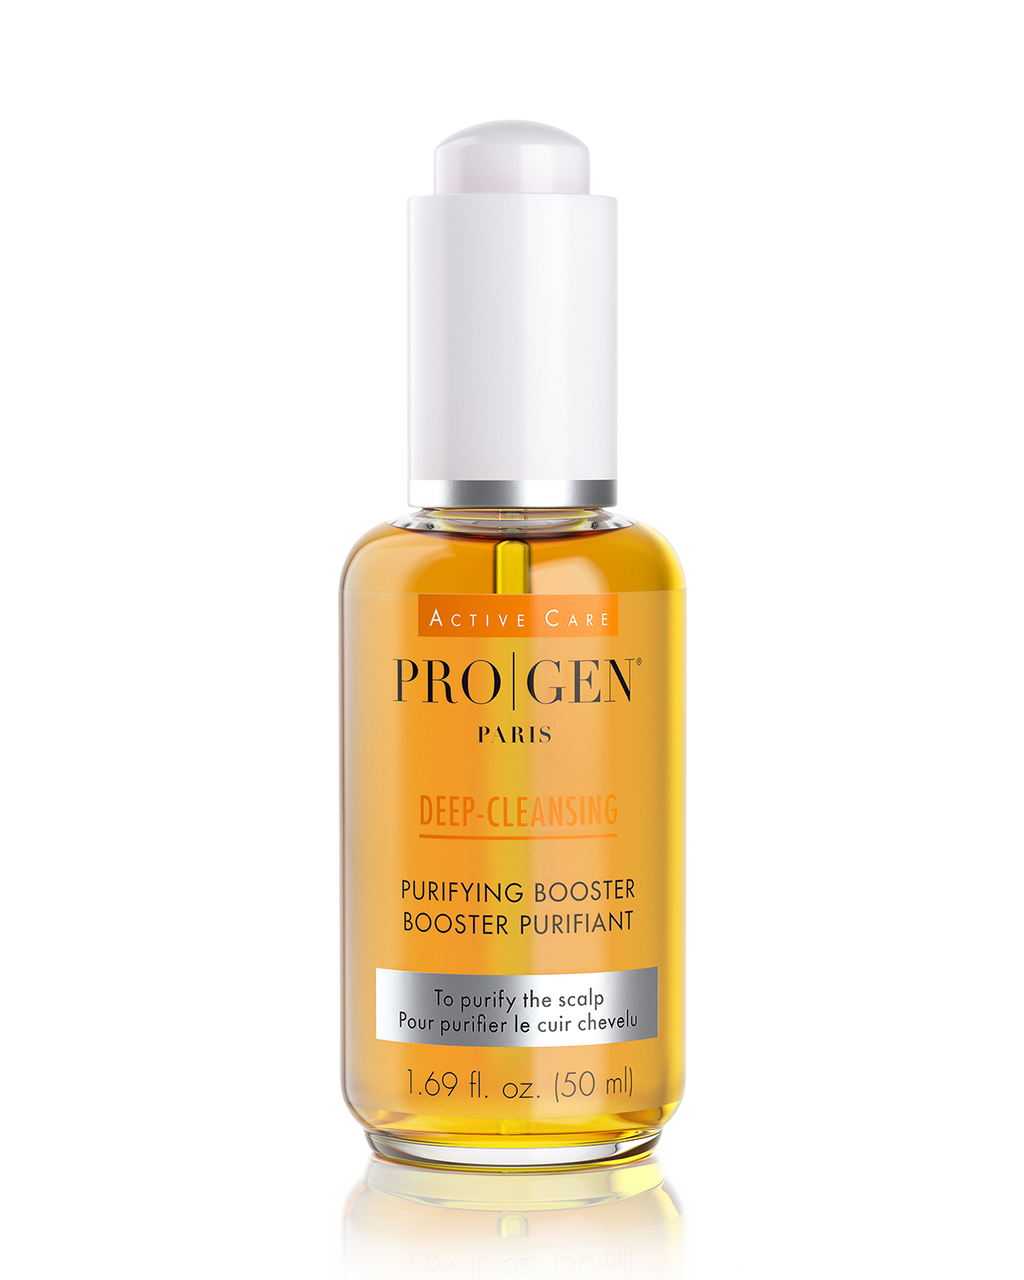 Deep-Cleansing Purifying Booster for Dry, Flaky Scalp